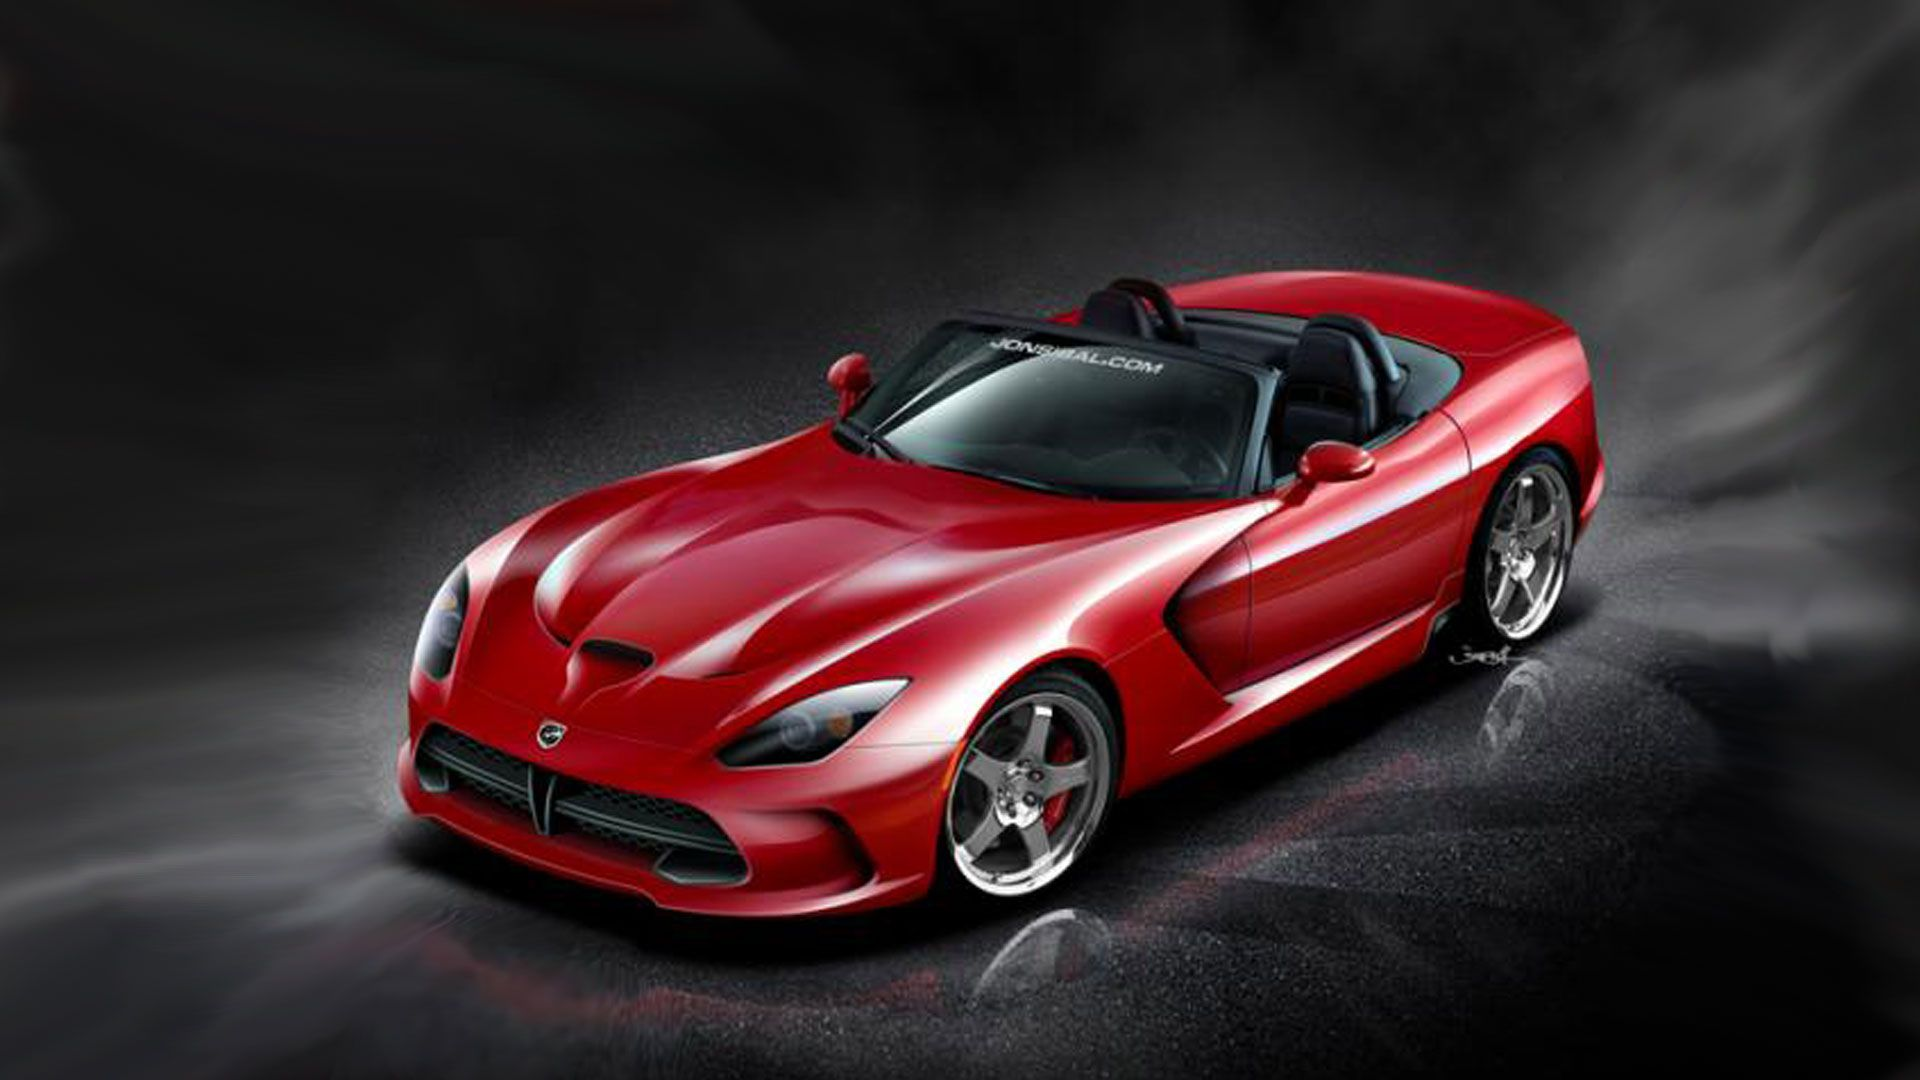 2015 dodge srt viper roadster desktop hd wallpaper desktop beraplan